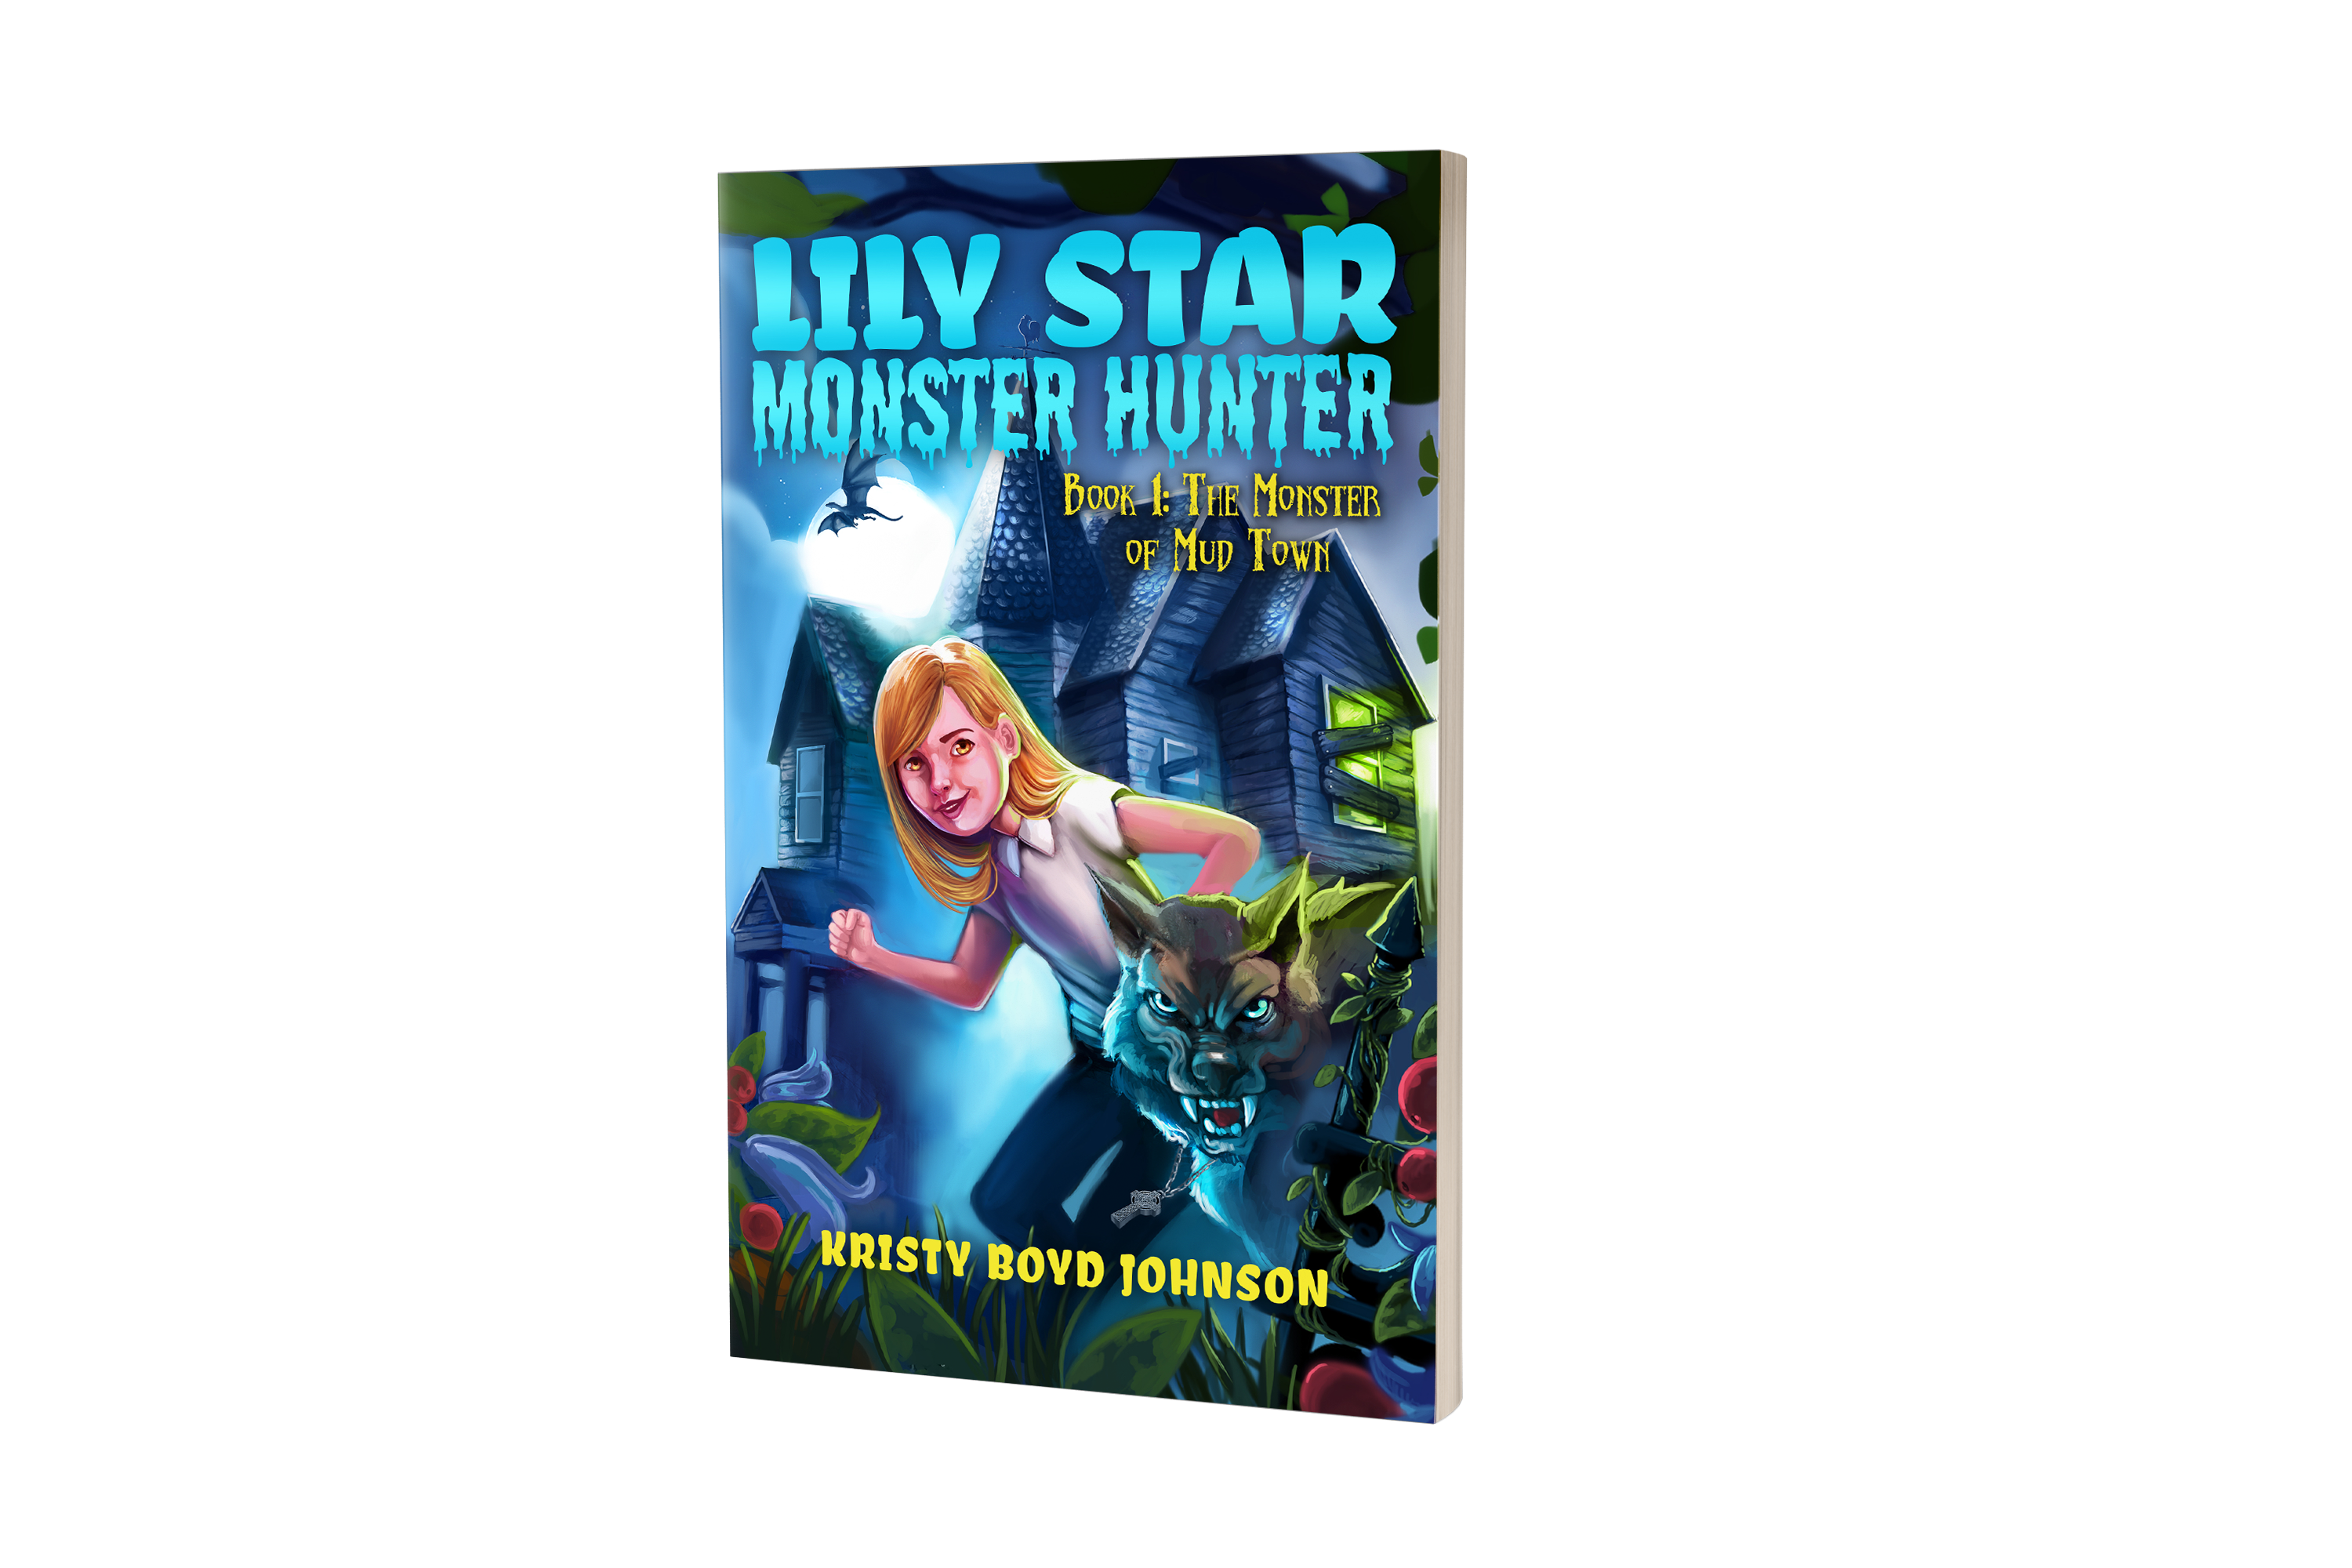 Lily Star, Monster Hunter book art design and cover